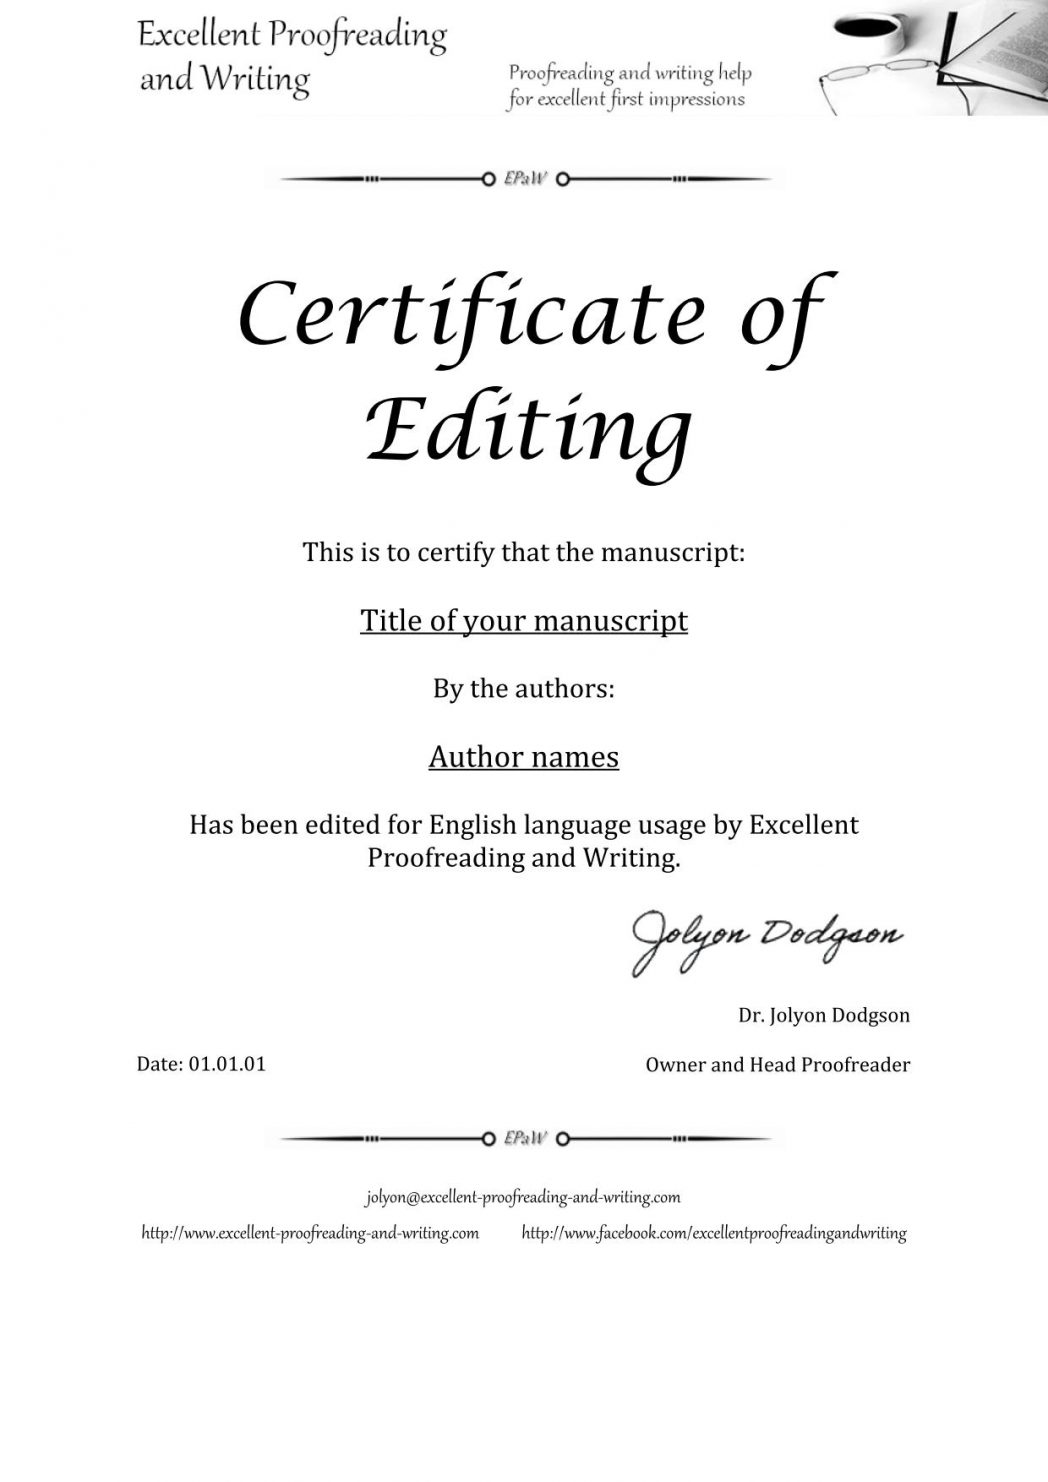 005 Essay Editor Free Example Online College Editing Help